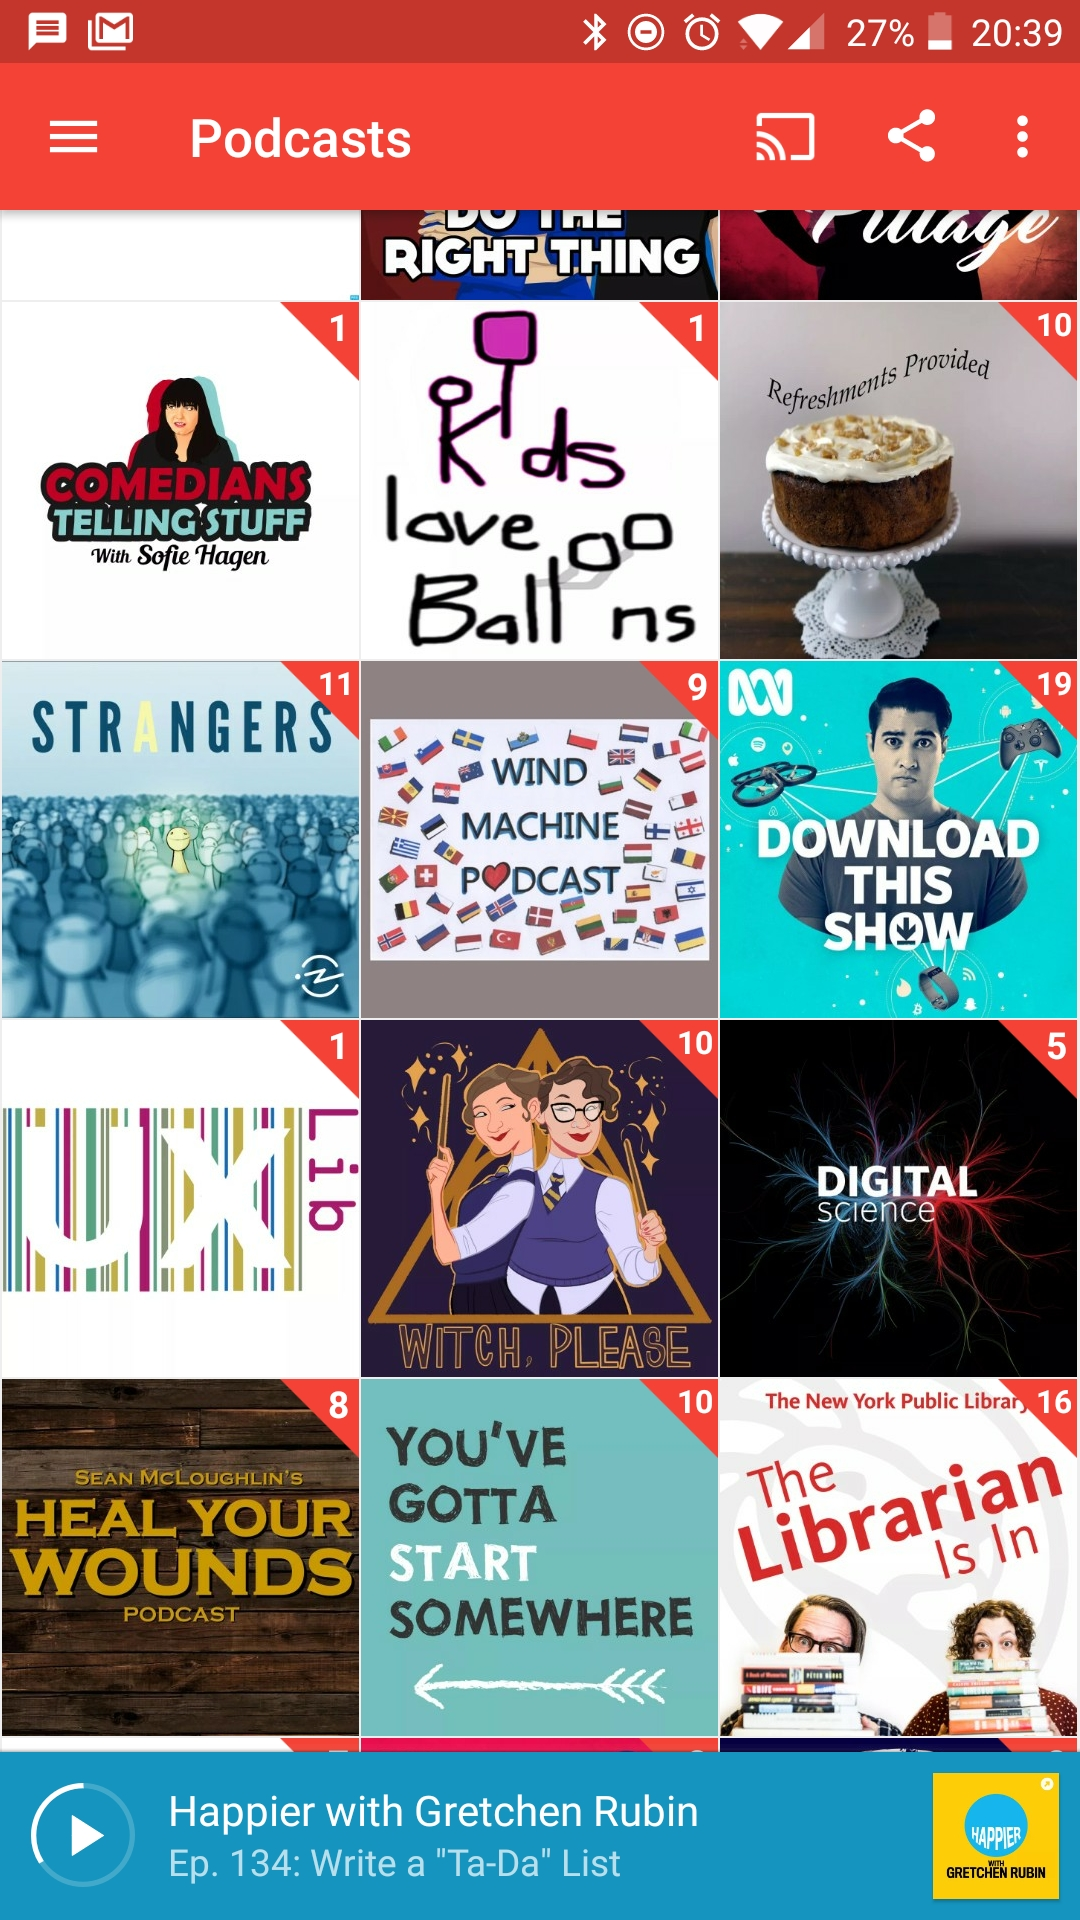 Screenshot from a podcast app showing various podcast tiles